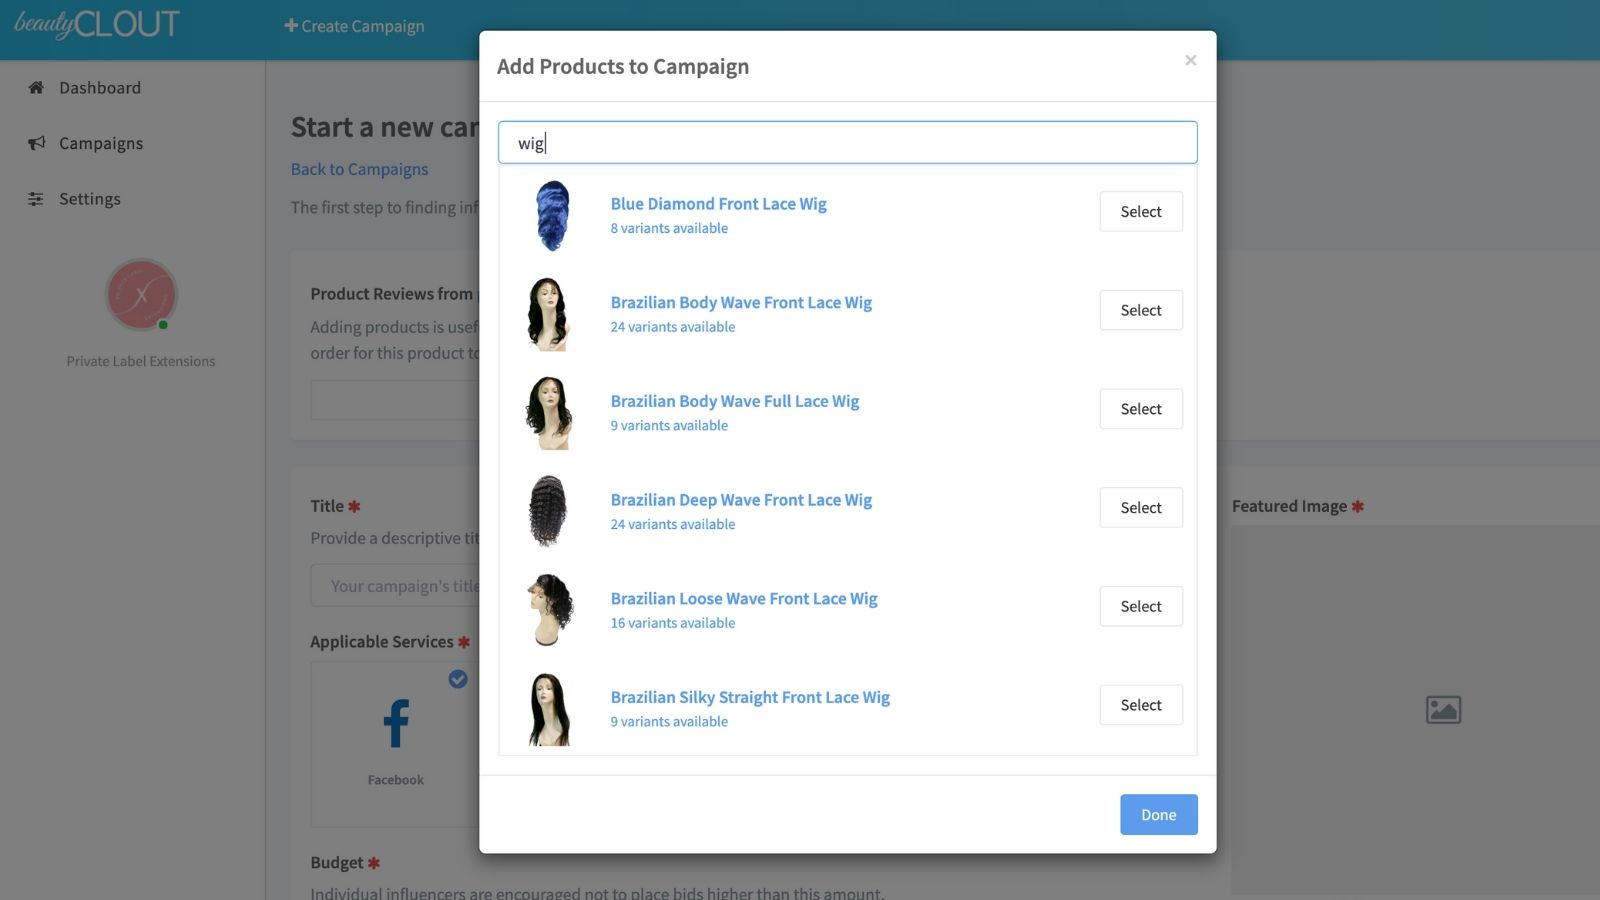 Products Quickly Import into App for Easy Campaign Creation